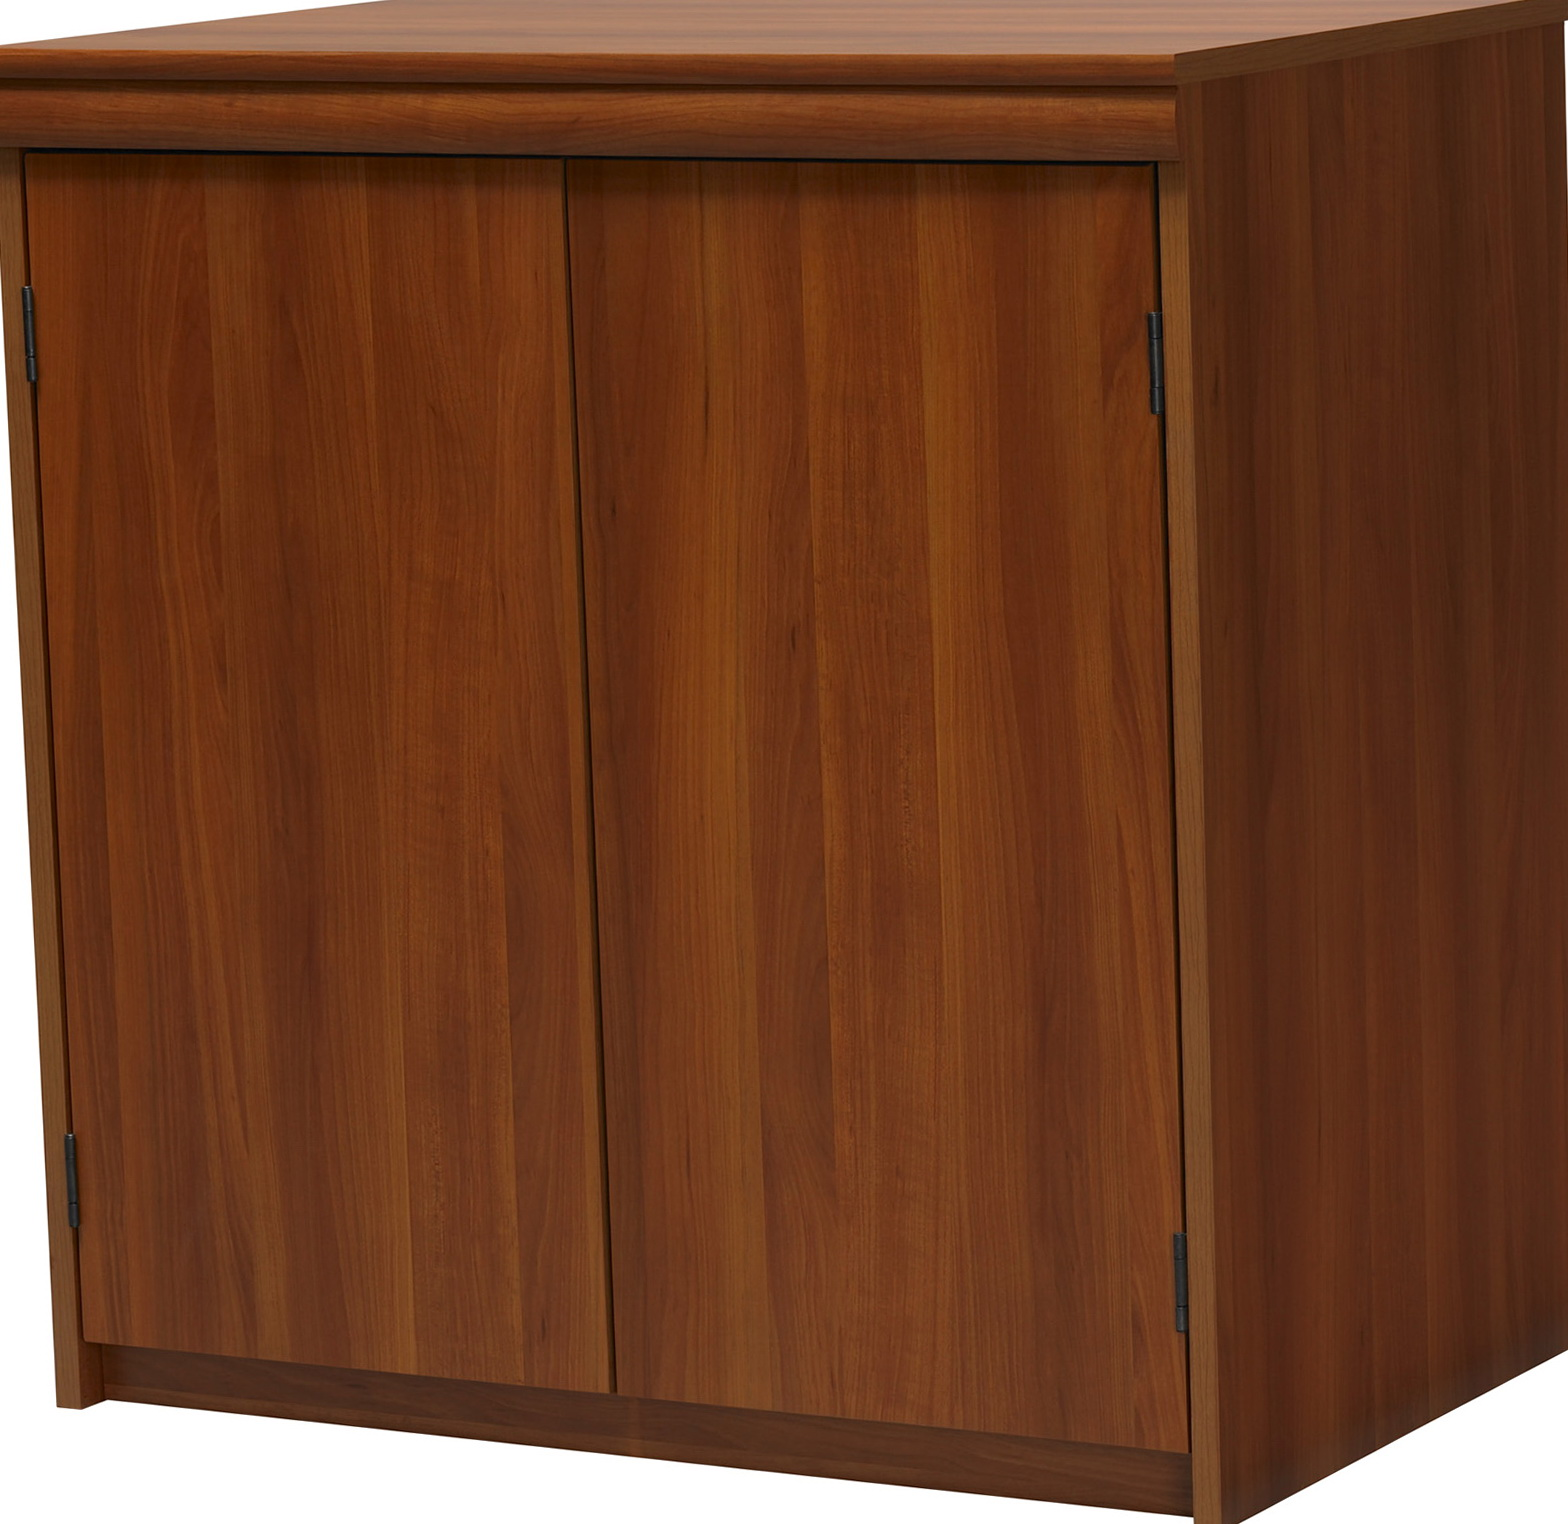 Home Depot Storage Cabinets With Doors